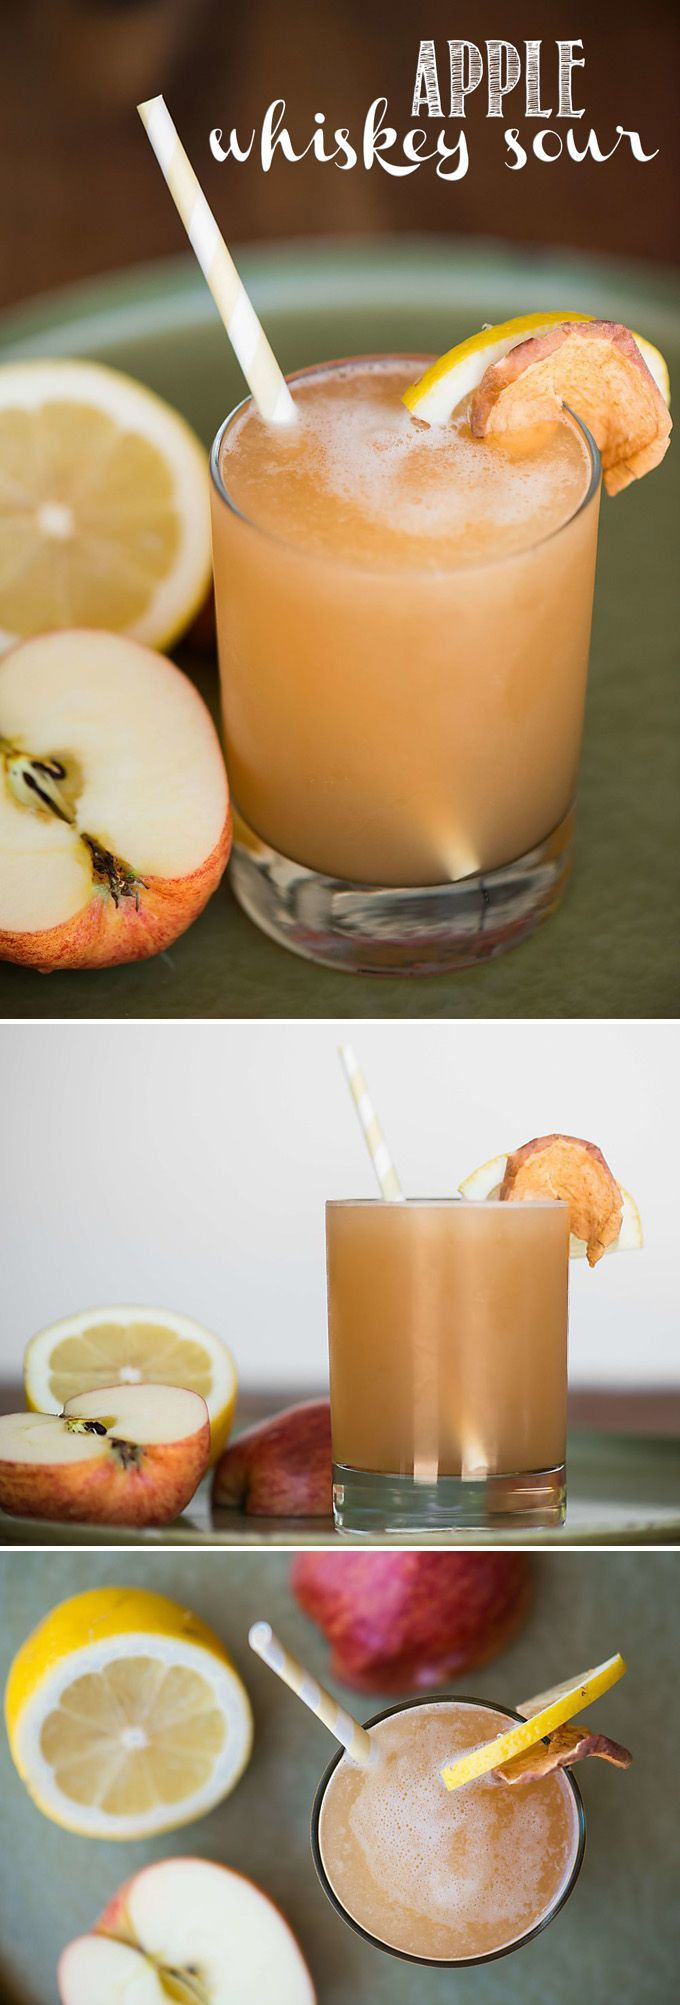 Apple Whiskey Sour, blended with apple juice, bourbon whiskey, lemon, and simple syrup, is an easy fall cocktail and a perfect Thanksgiving drink!